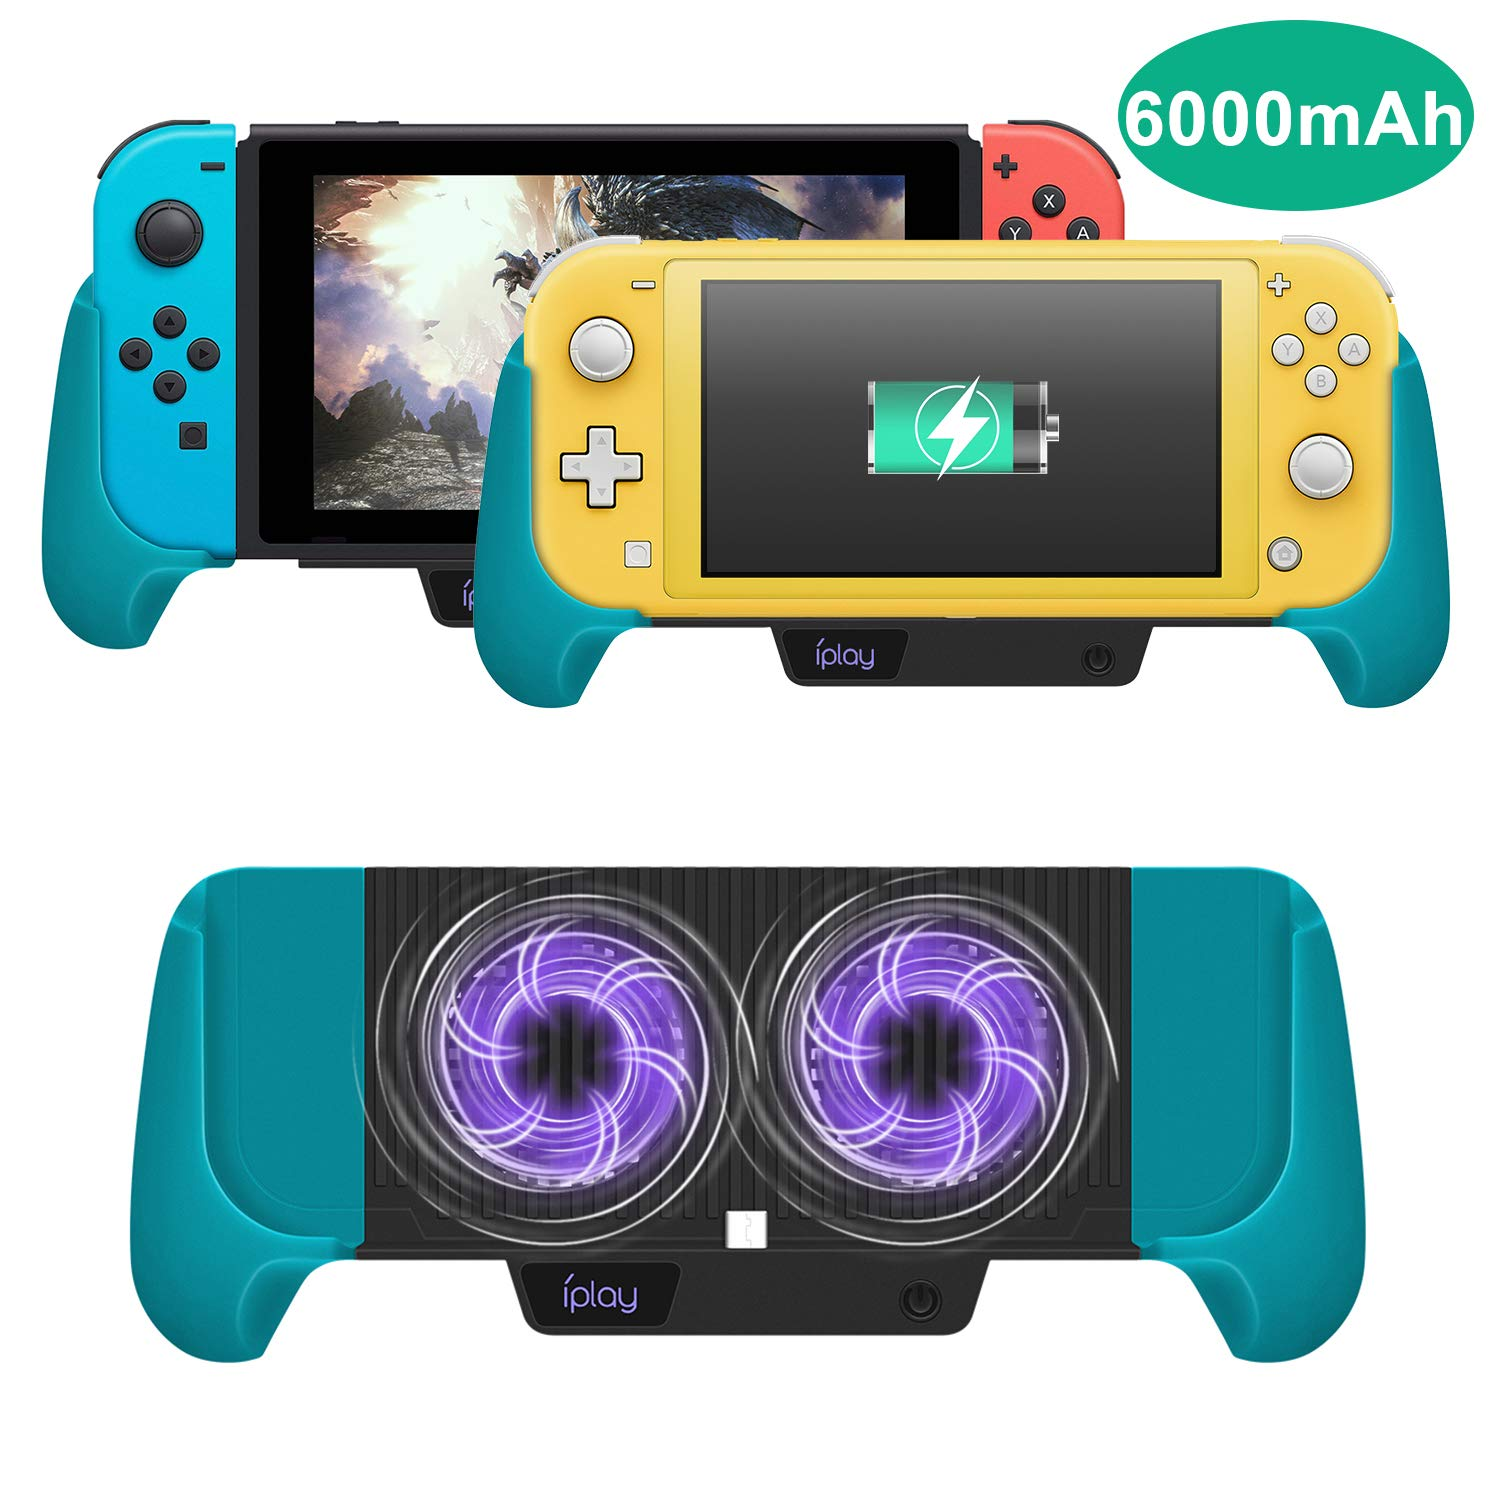 Cooling Charging Grip for Nintendo Switch/Switch Lite, Multifunctional 4 in 1 Gaming Grip with Charger Stand Cooling Fan Bracket Design for Nintendo Switch Lite and Nintendo Switch (Blue)